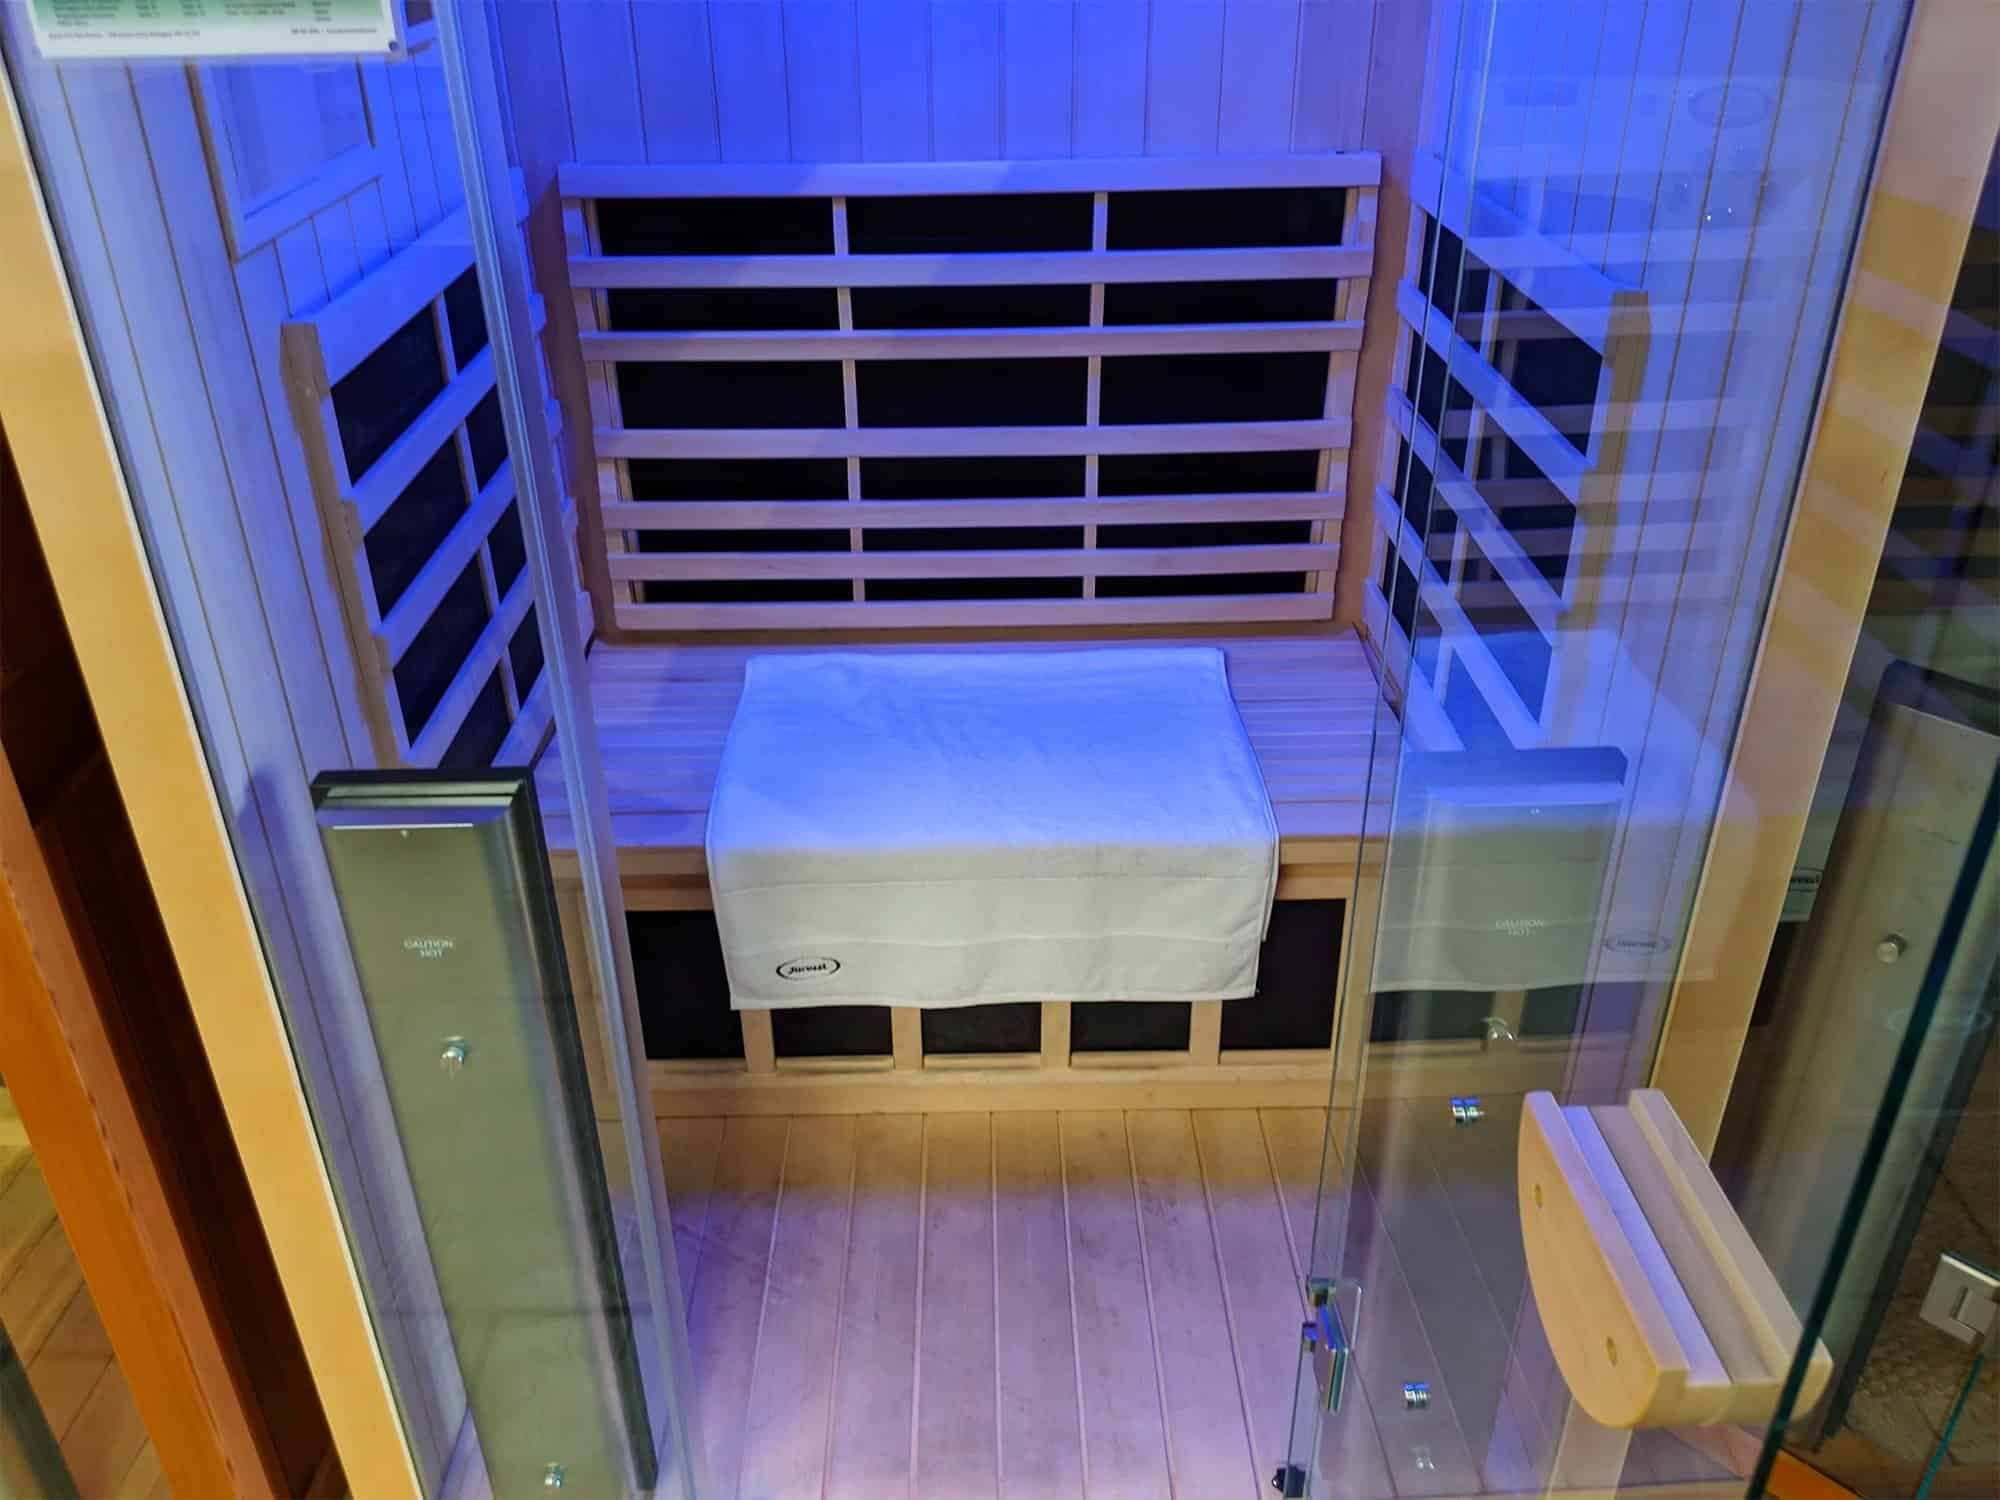 Jacuzzi Infrared Sauna for sale in Whitby, Ontario